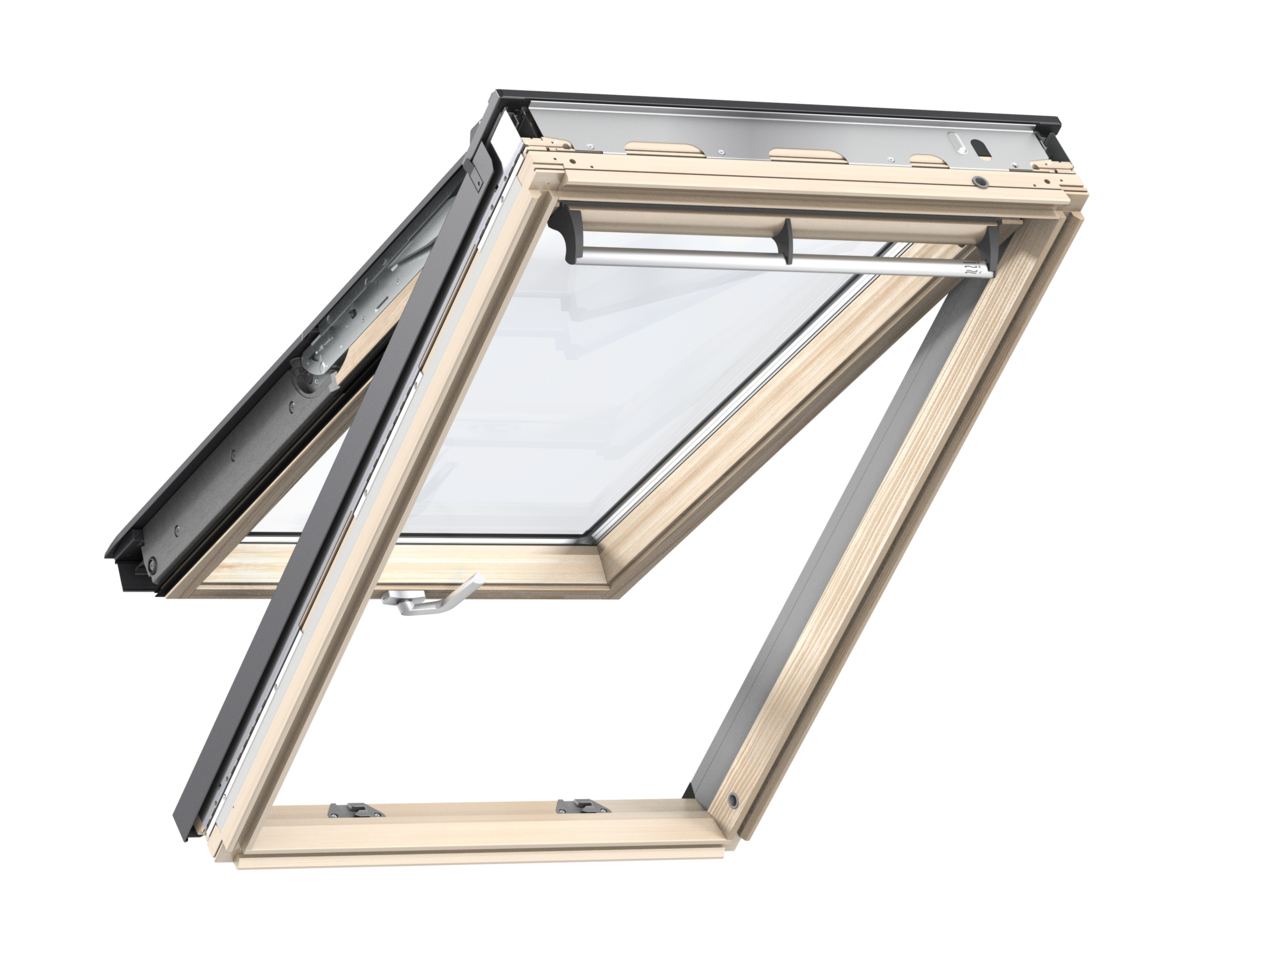 Velux GPL CK06 550 x 1180mm Top Hung Standard 70Pane Roof Window - Pine